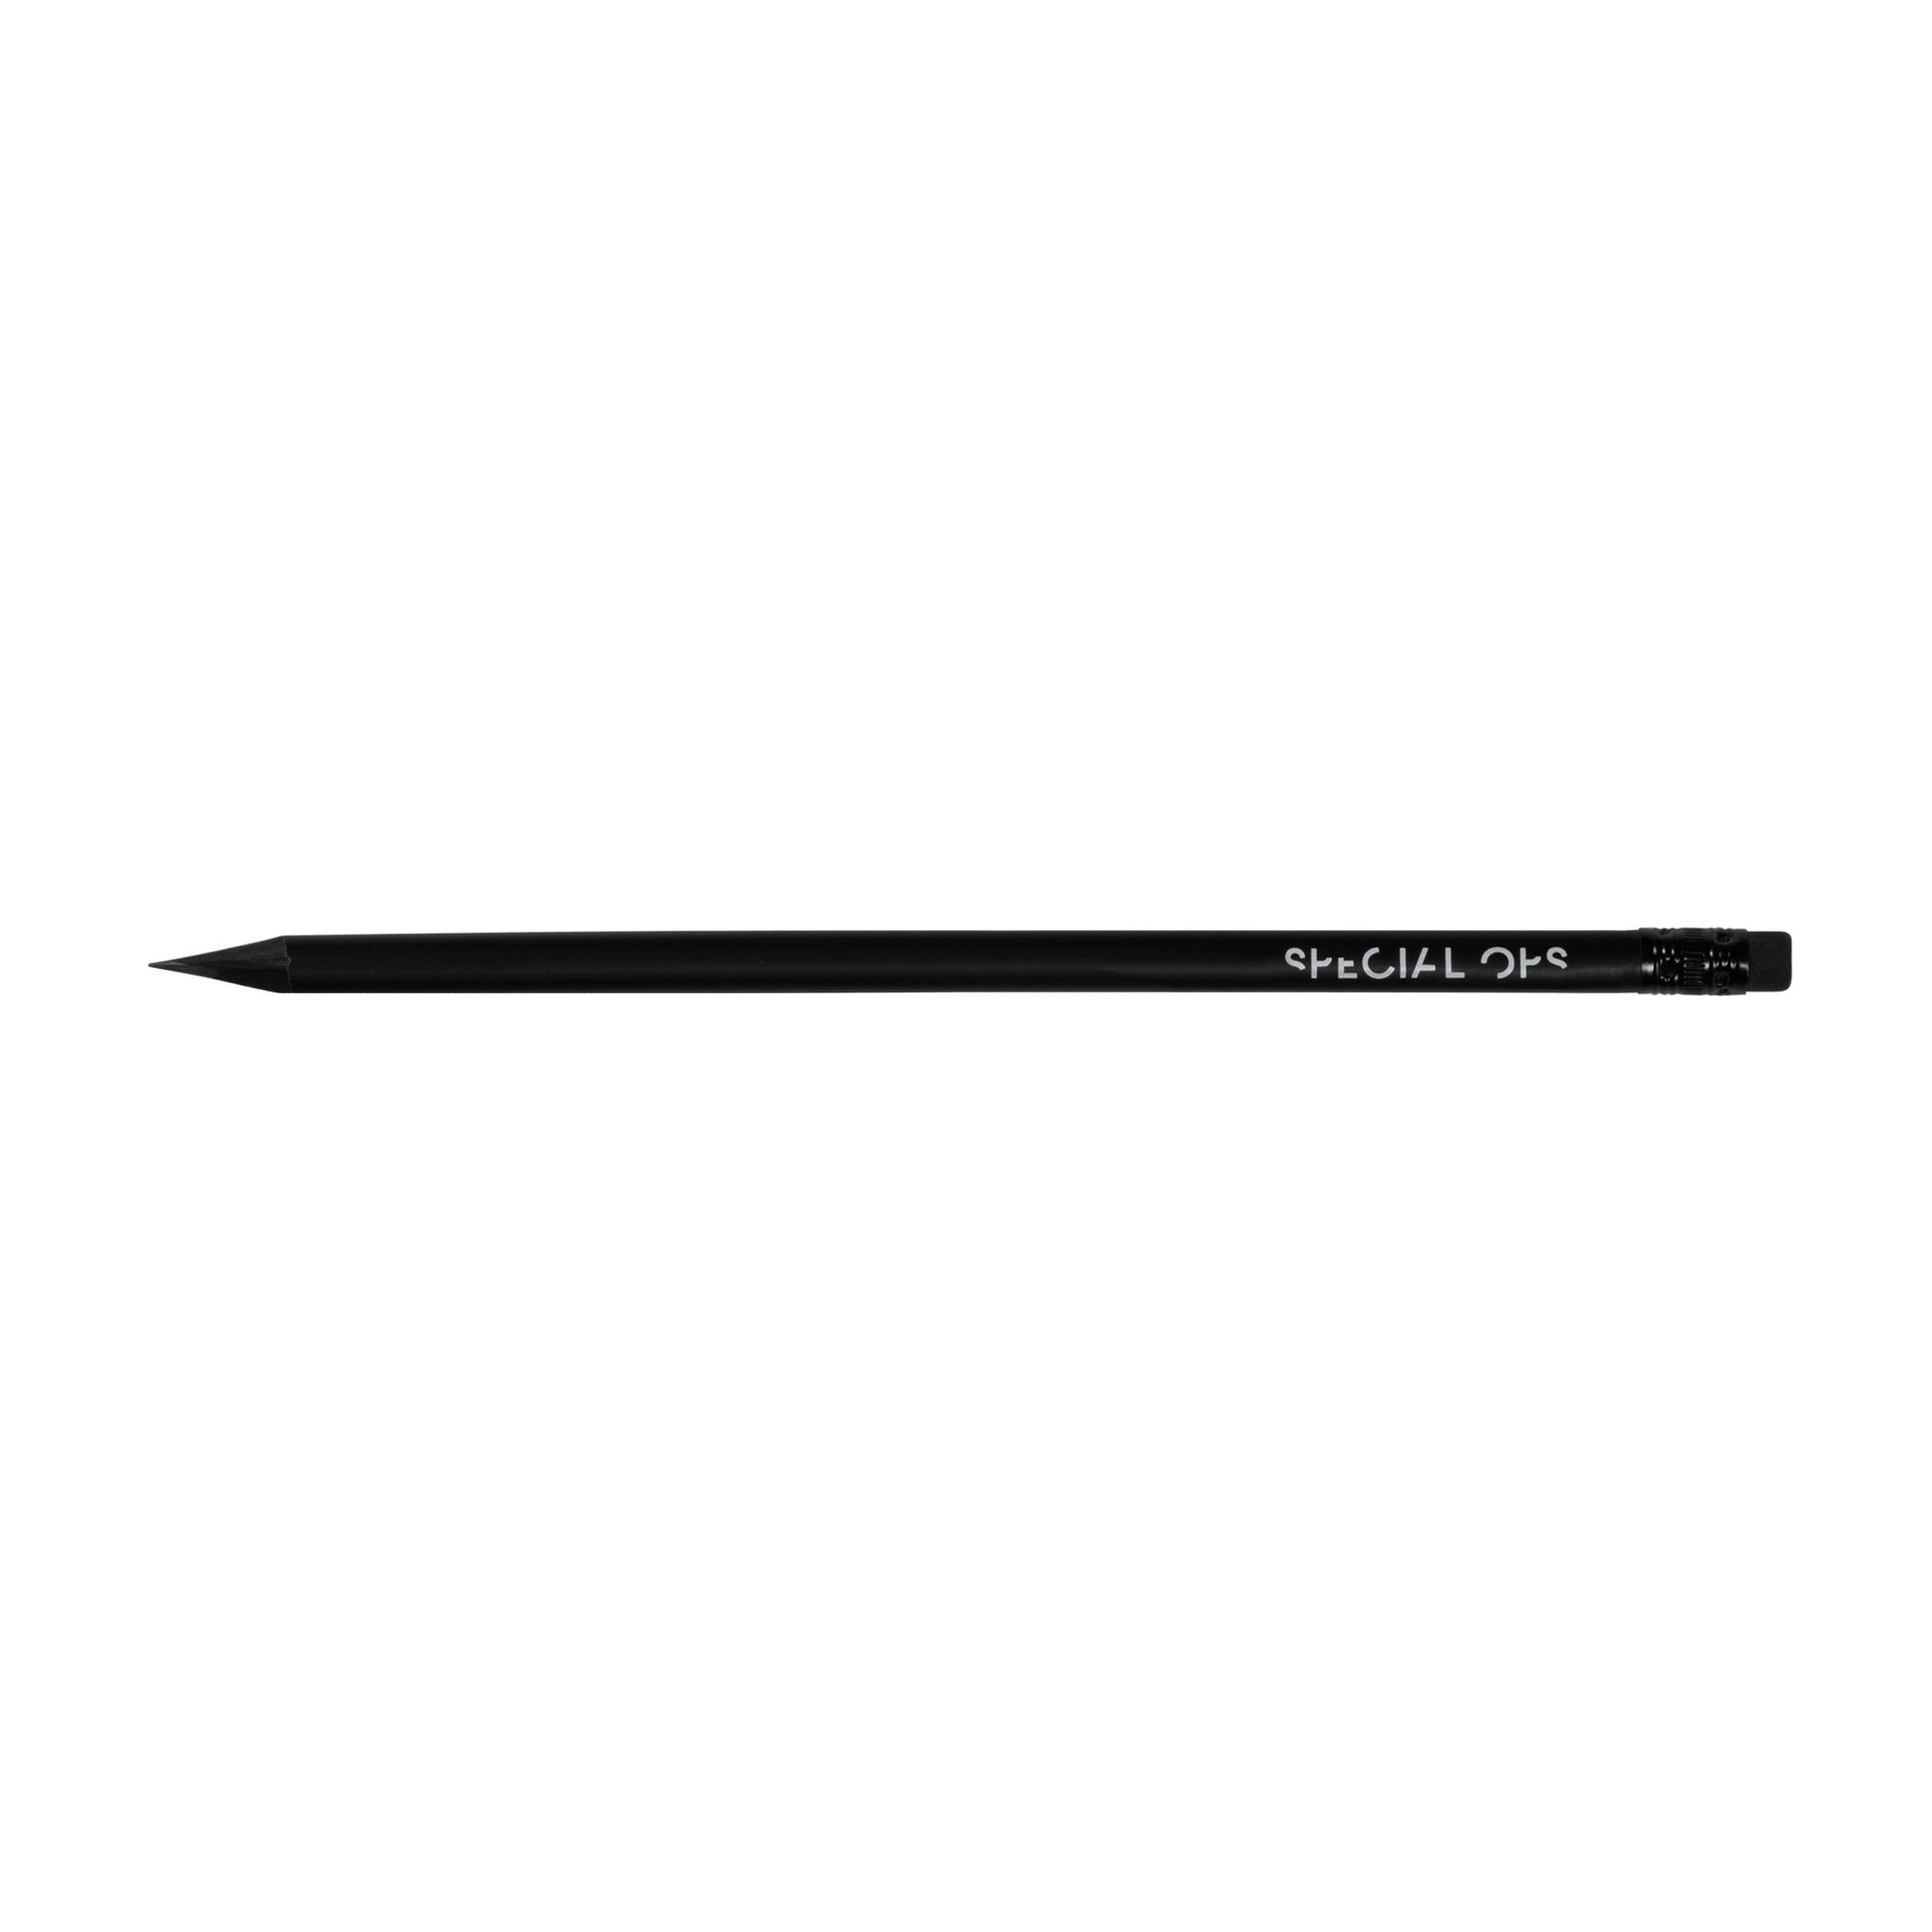 SPYSCAPE Special Ops Pencil